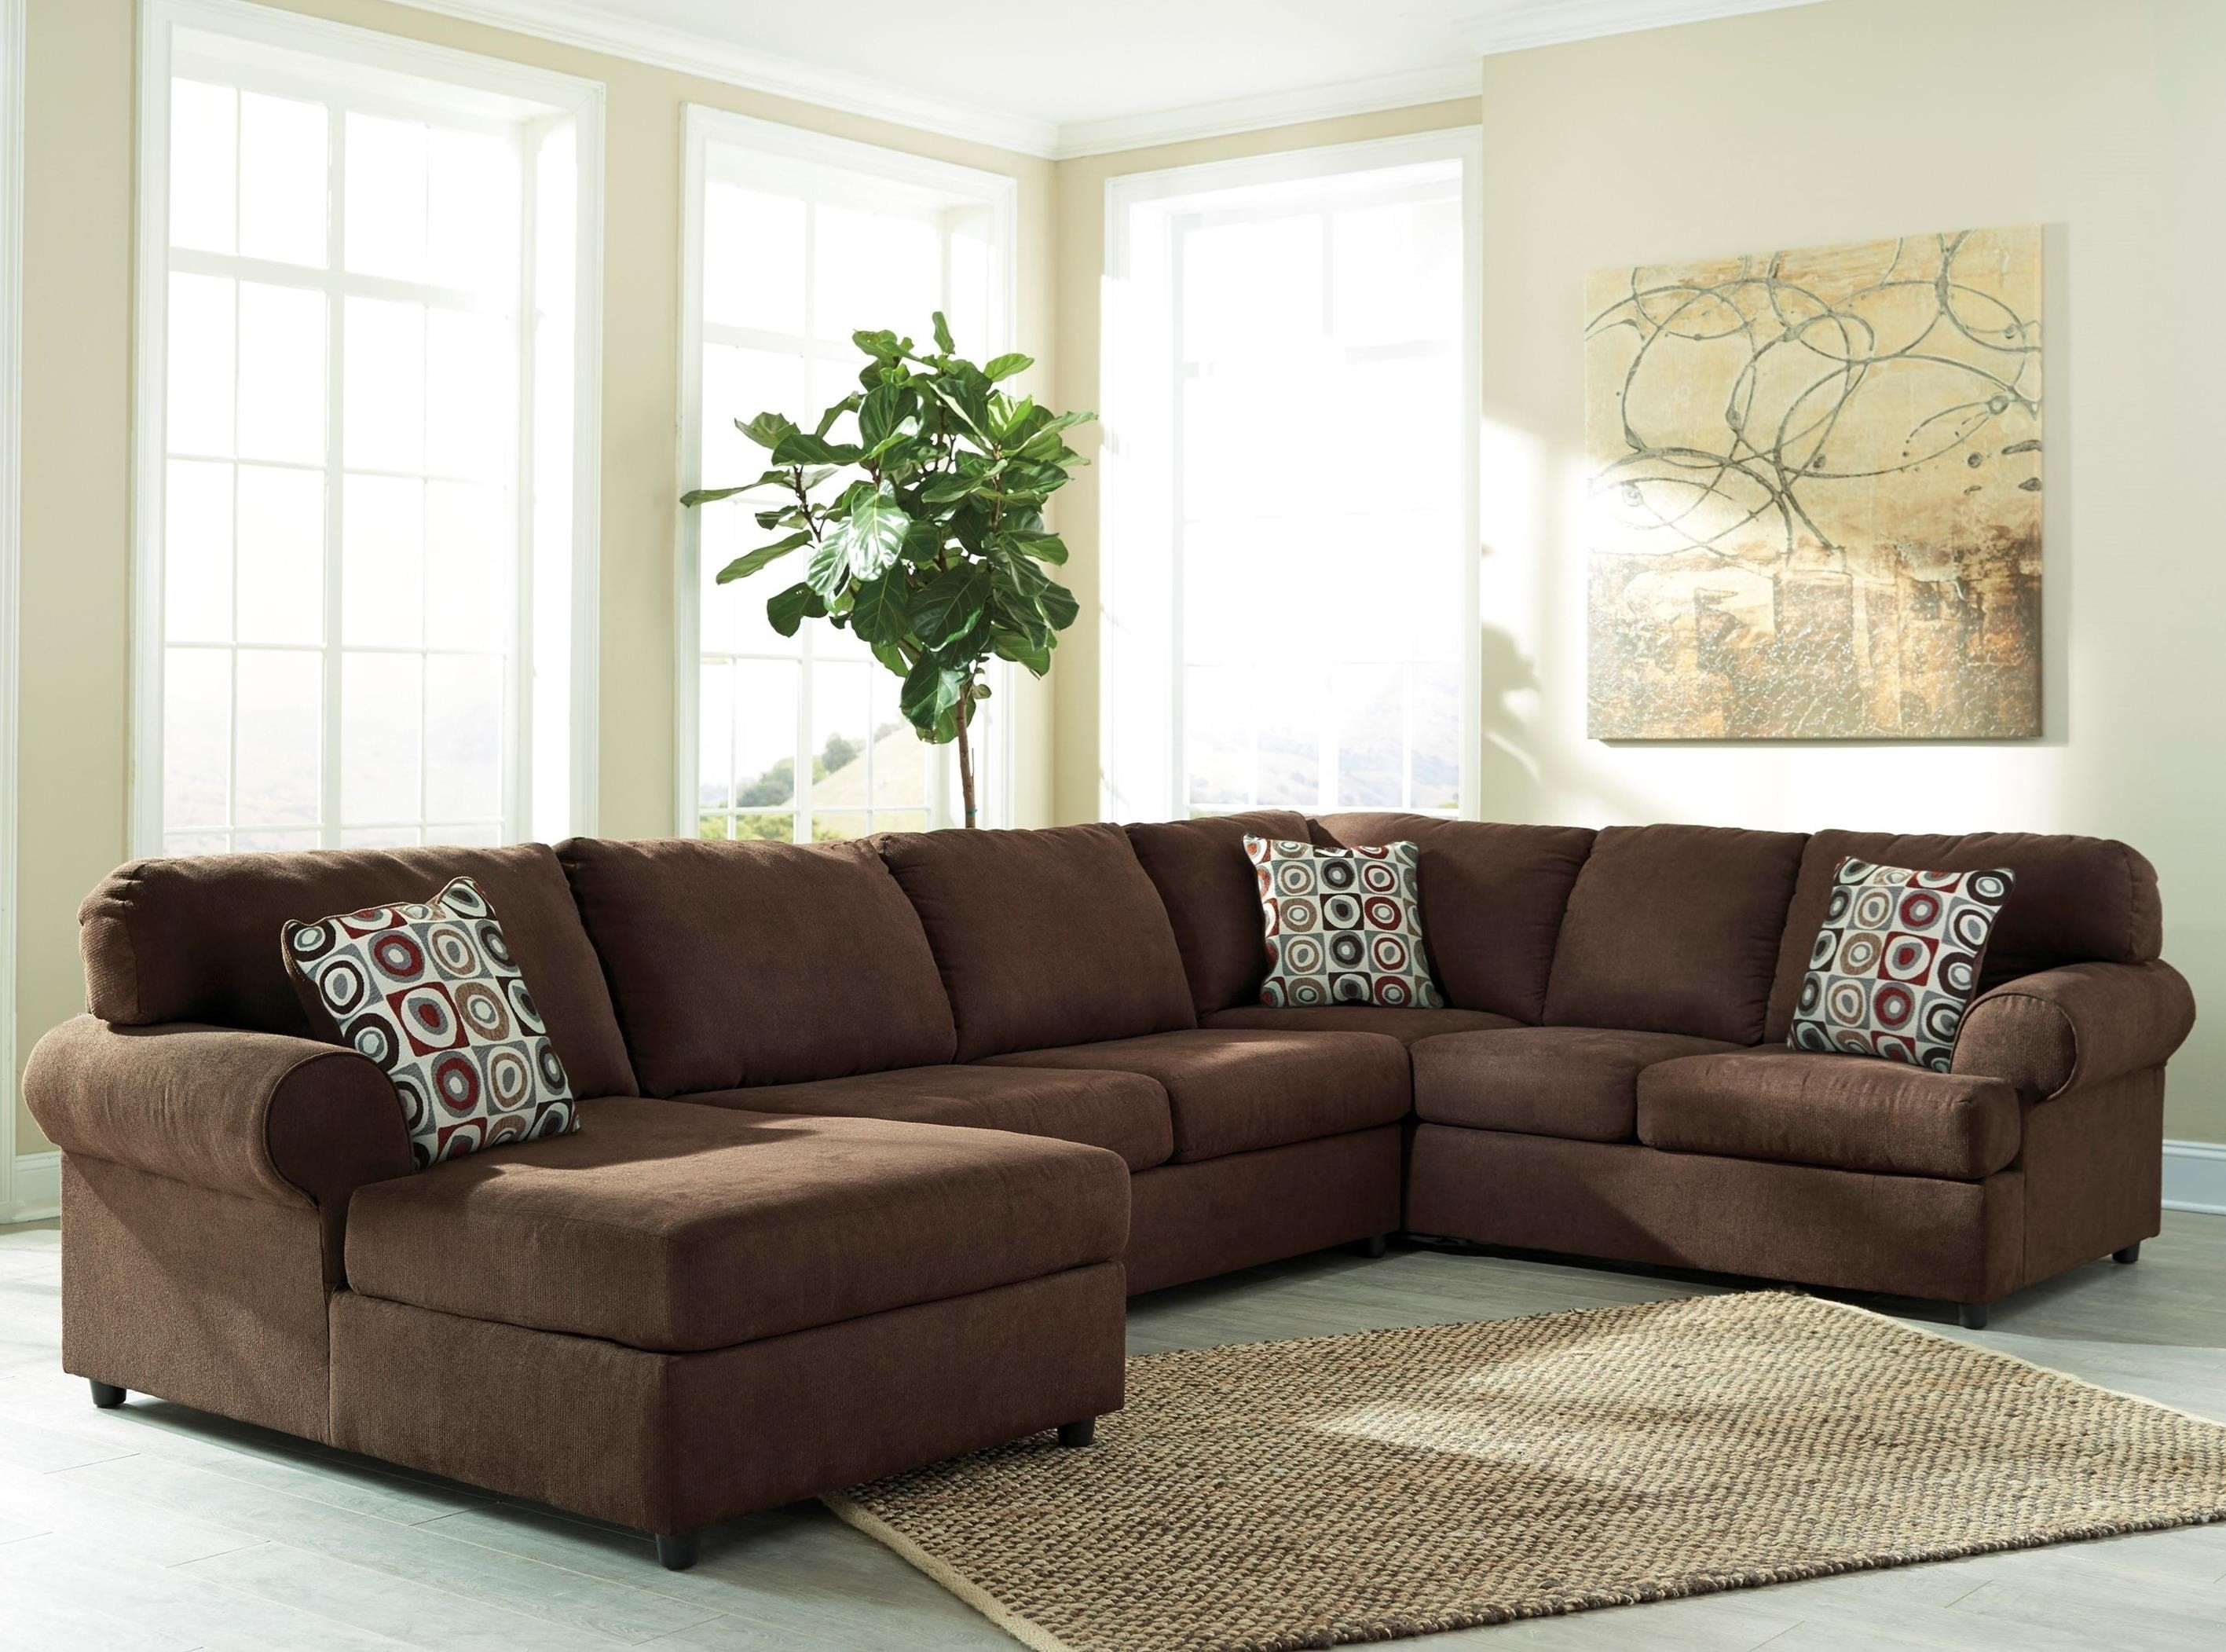 3 Piece Sectional Malbry Point W Laf Chaise Living Spaces 223533 0 For Malbry Point 3 Piece Sectionals With Raf Chaise (View 24 of 30)